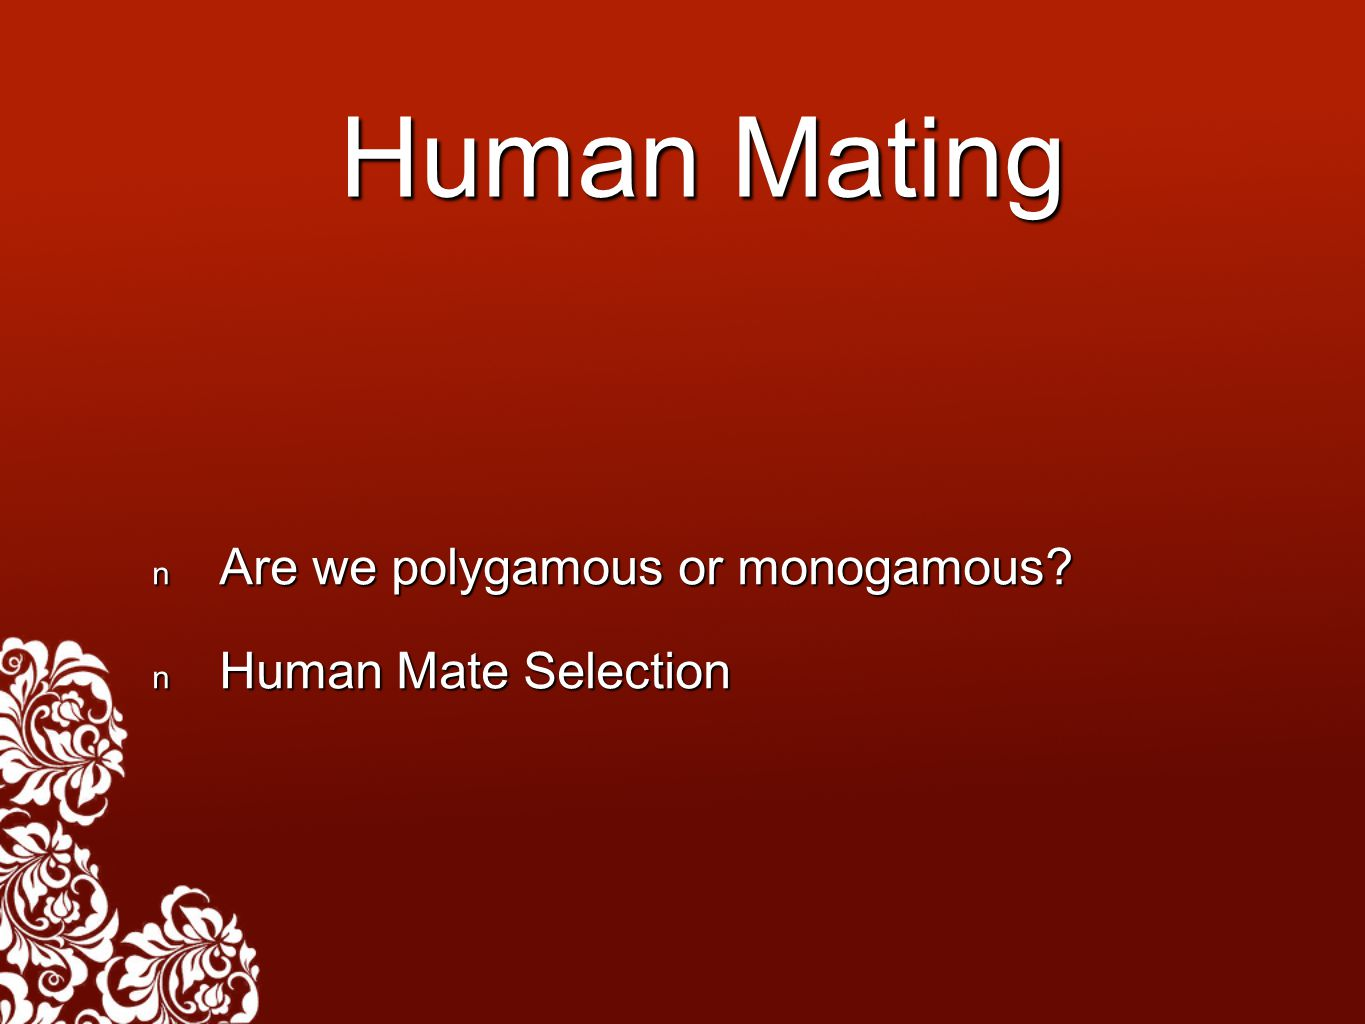 Human Mating Are we polygamous or monogamous? Are we polygamous or monogamous? Human Mate Selection Human Mate Selection